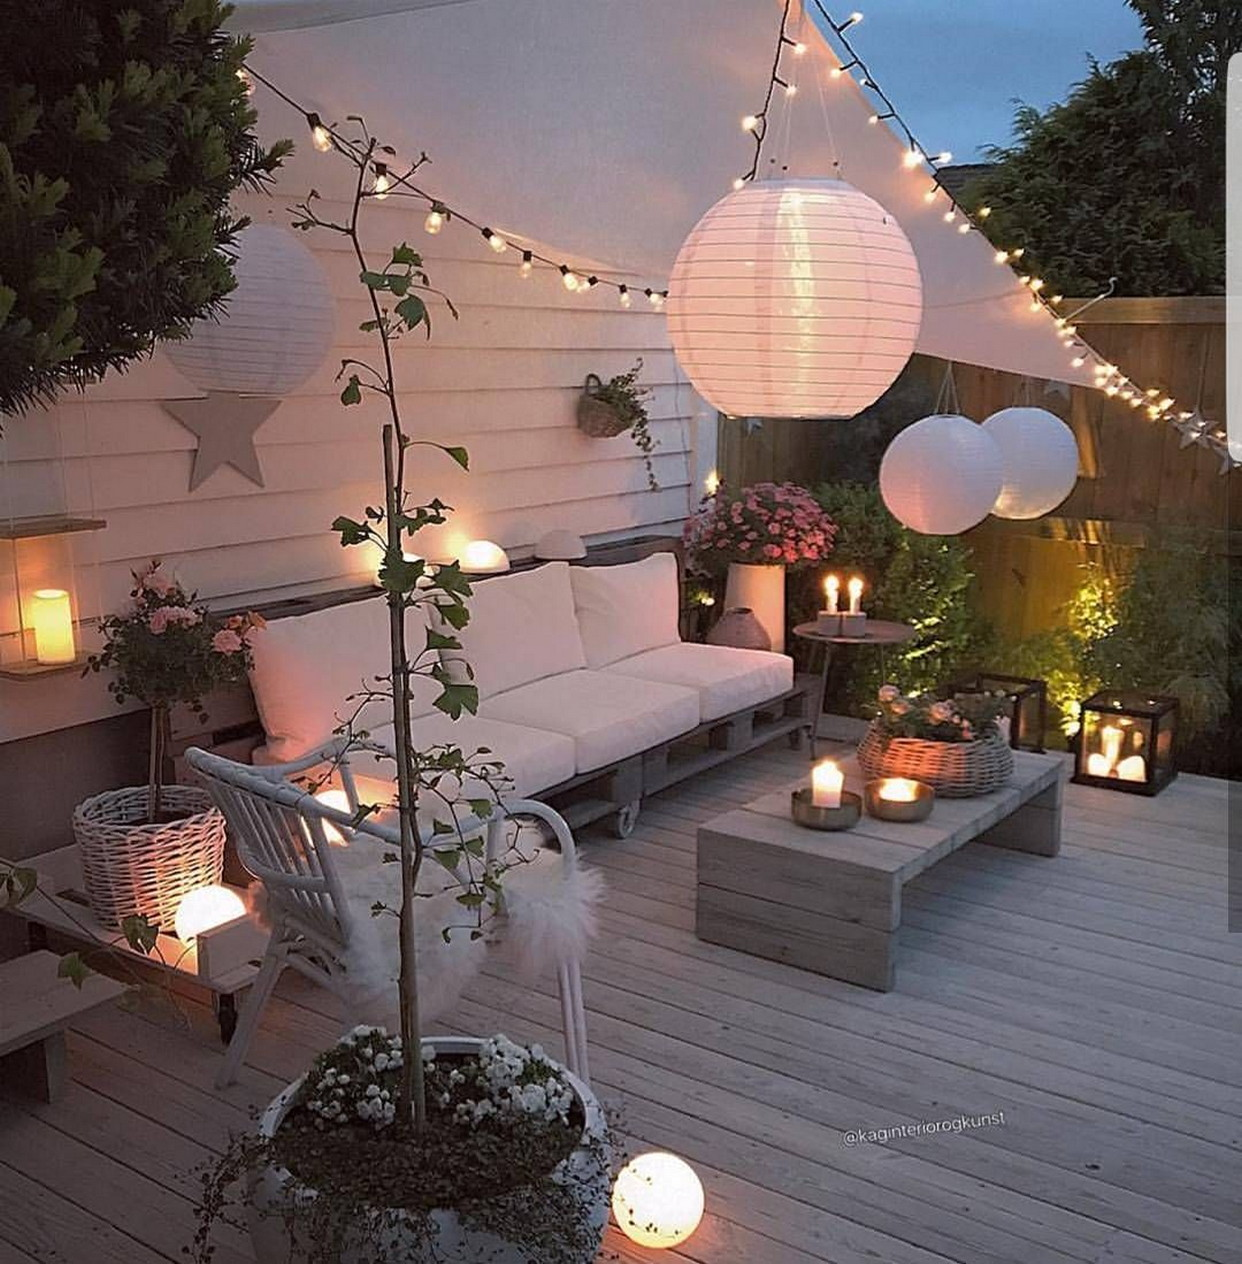 Light Furniture for Changing Terrace into Closed Living Room